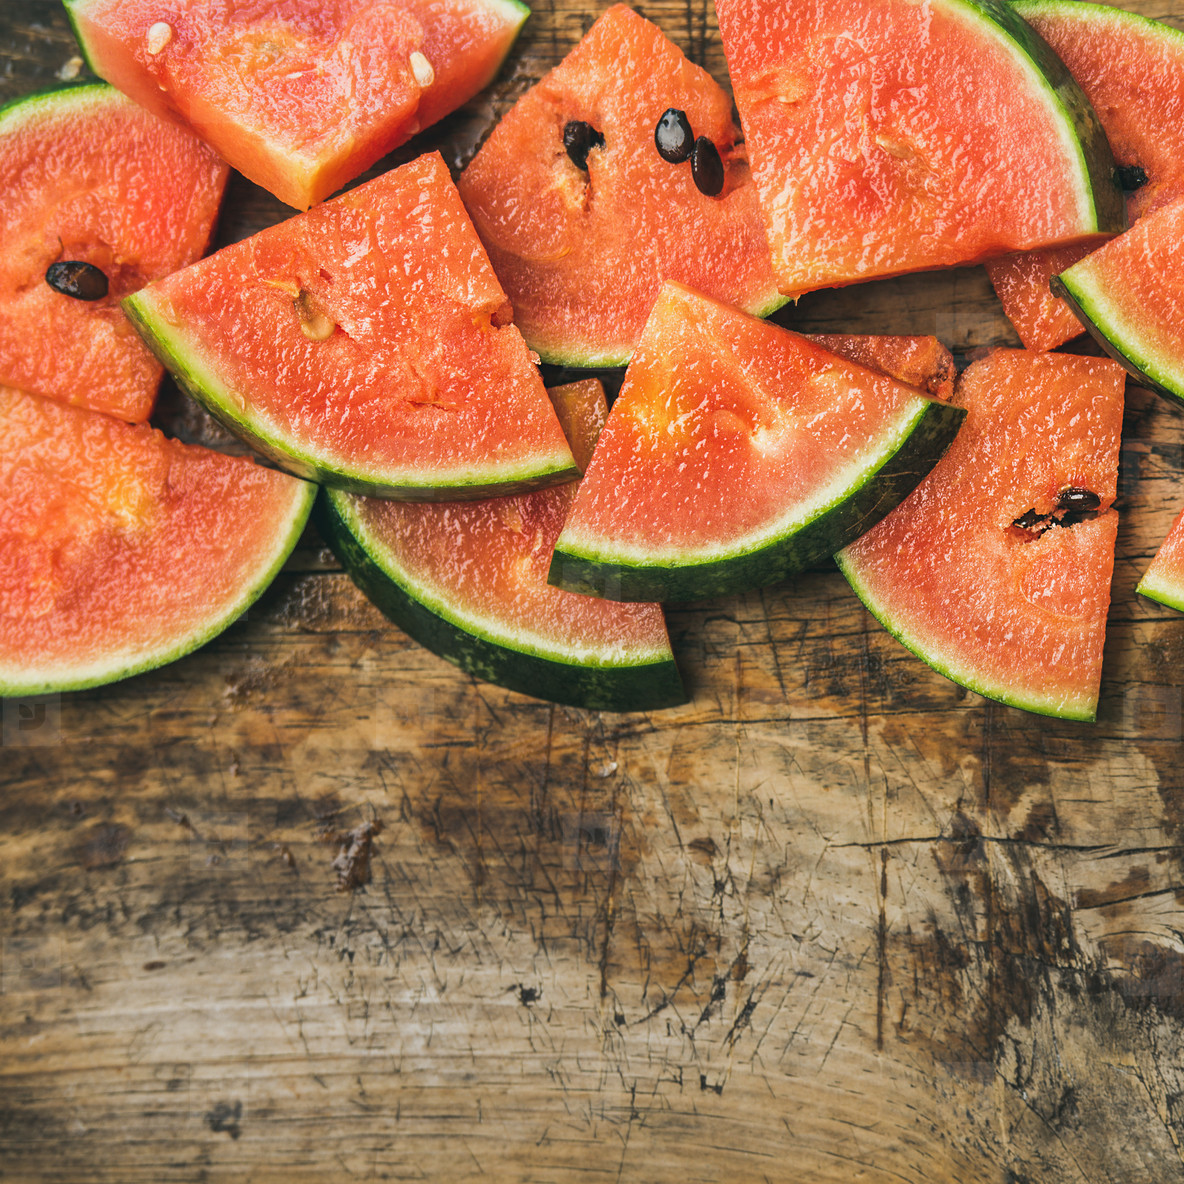 Juicy watermelon pieces over rustic wooden background  square crop